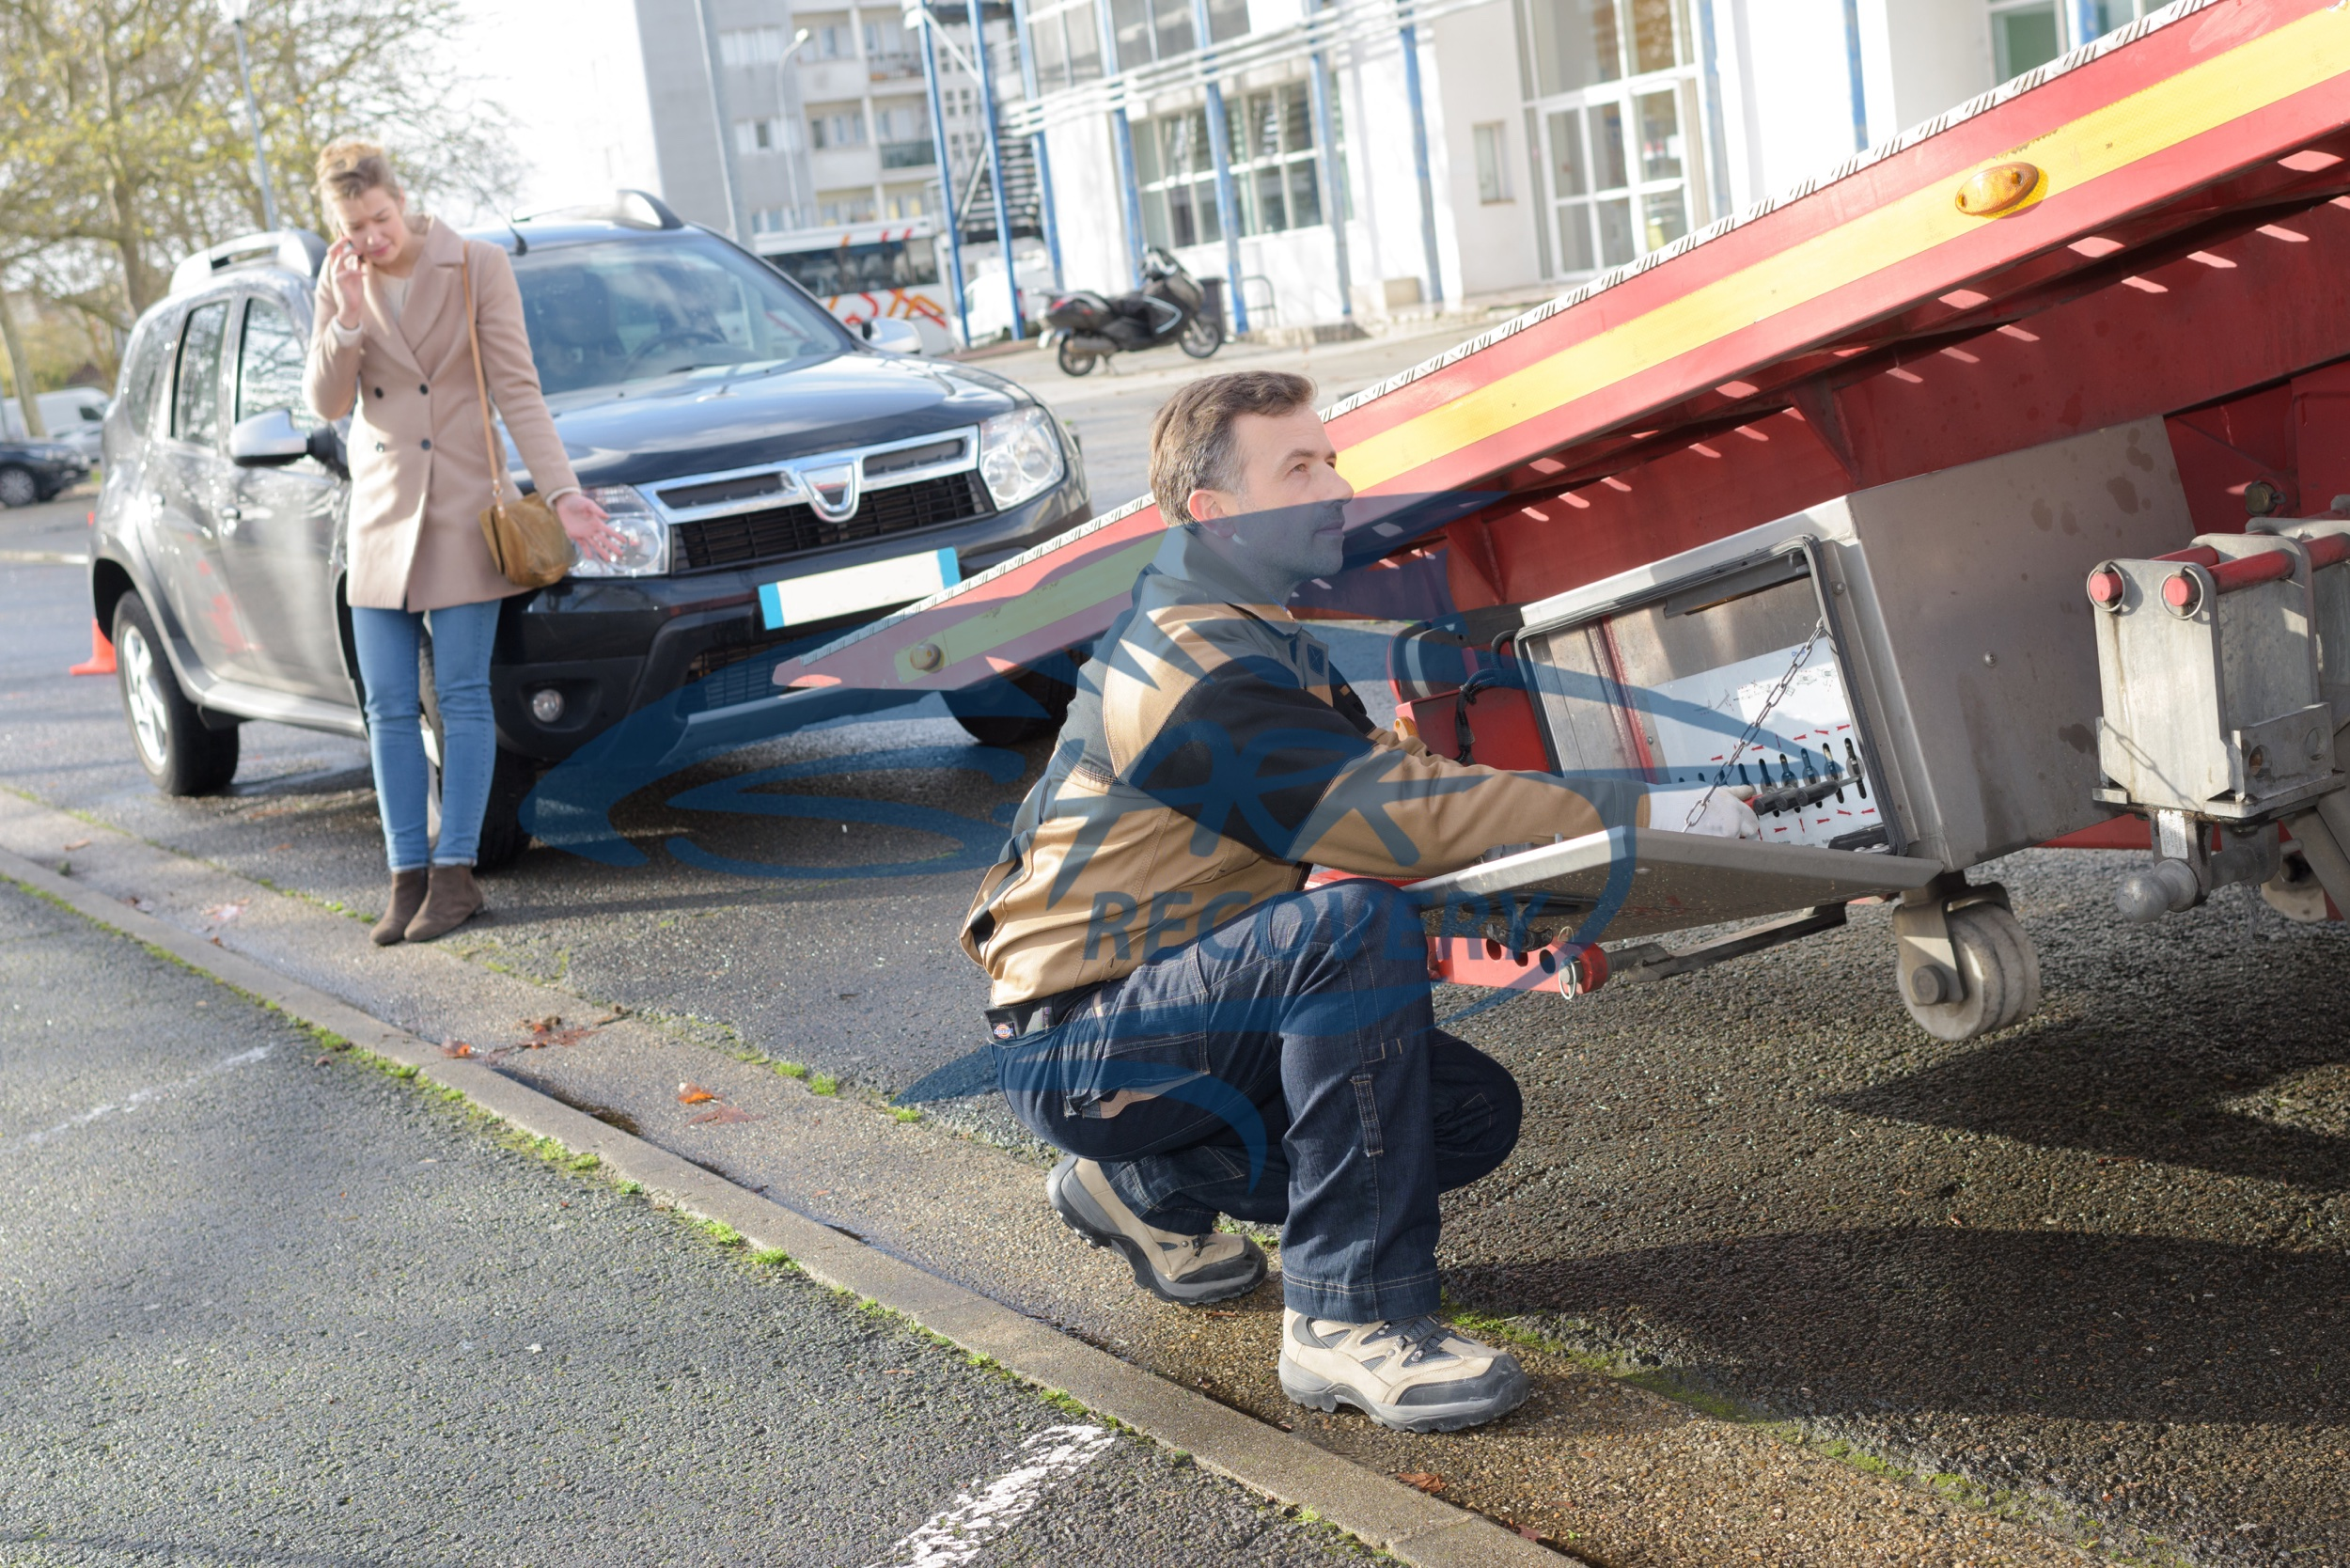 We know the towing business like no other. Let us help you boost your towing business today.